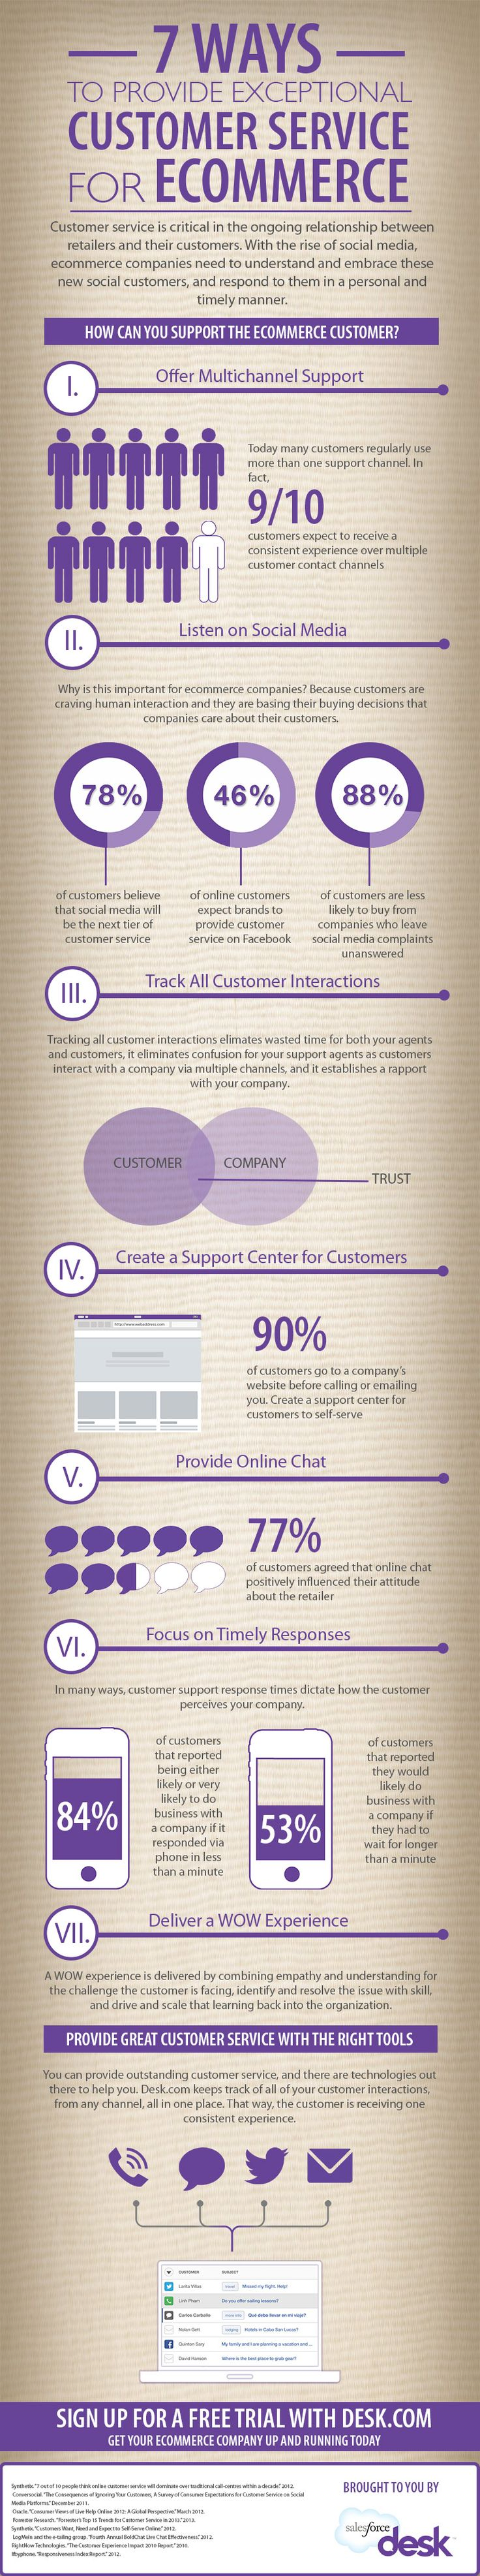 7 Ways To Provide Exceptional Customer Service Online